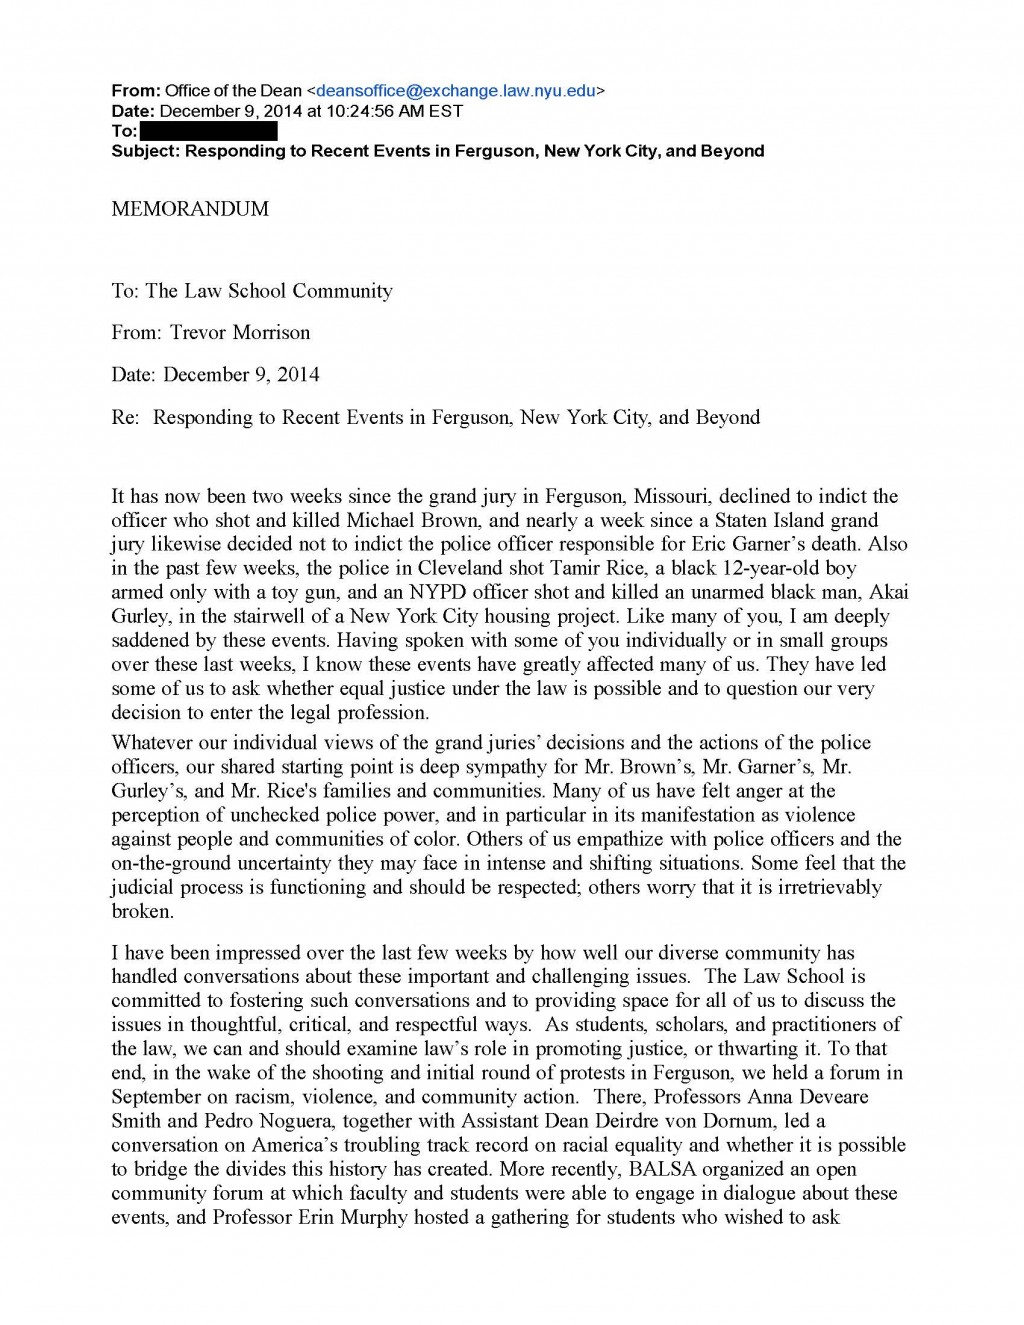 005 Nyu Response 14 Page 1 Essay Example Why Exceptional Supplement Examples College Confidential Large